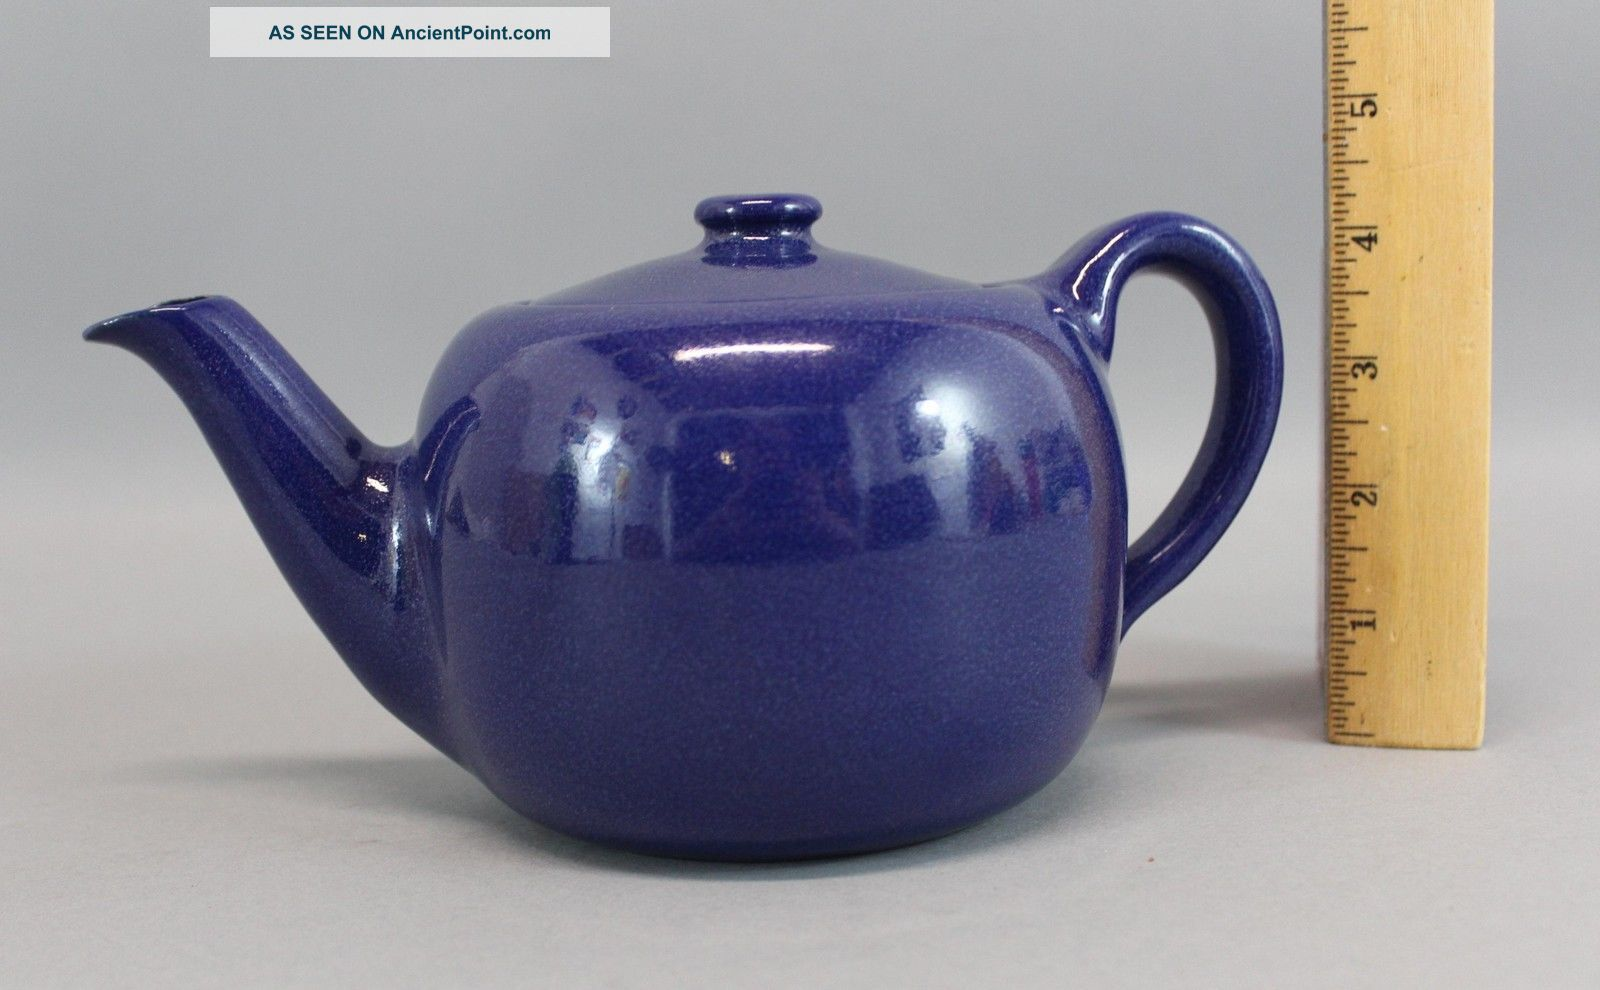 Antique Seg Saturday Evening Girls,  Art & Crafts,  Blue Art Pottery Teapot,  Nr Arts & Crafts Movement photo